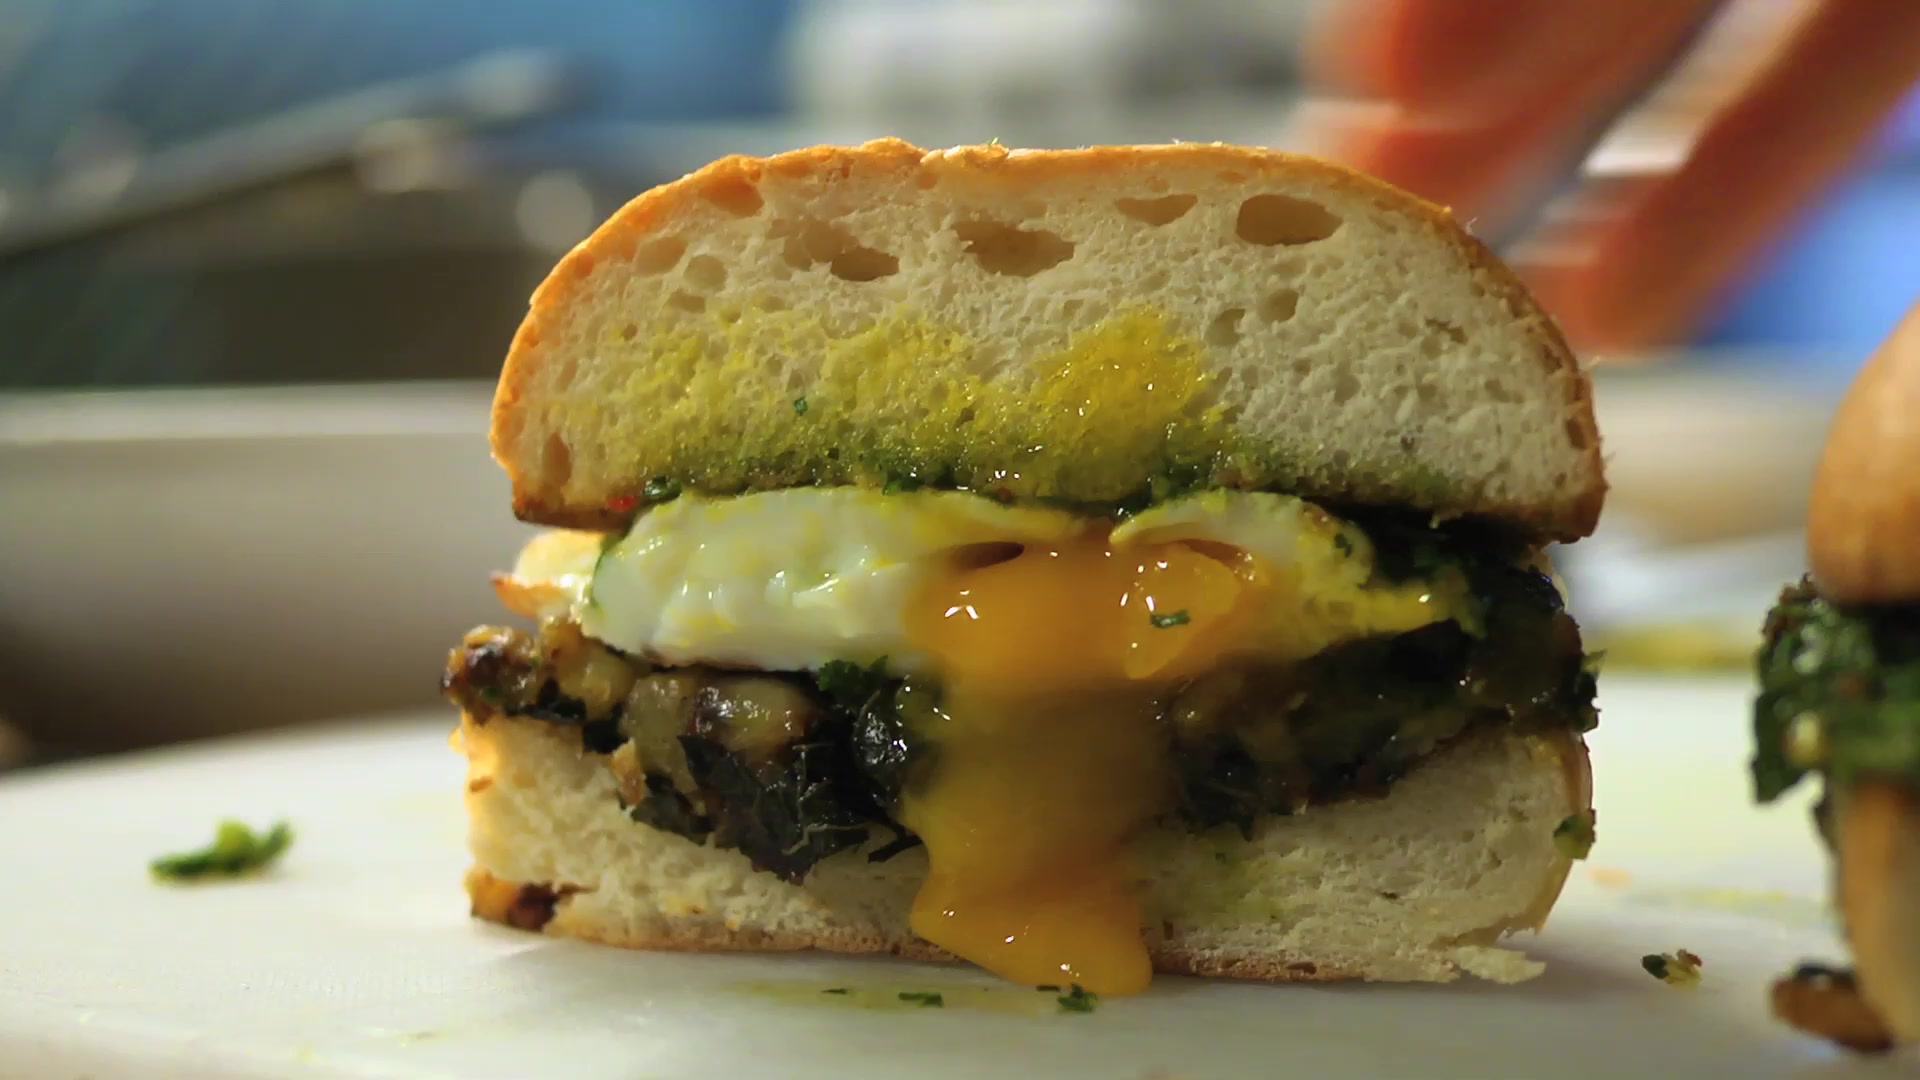 Northern Spy Food's Egg Sandwich Recipe